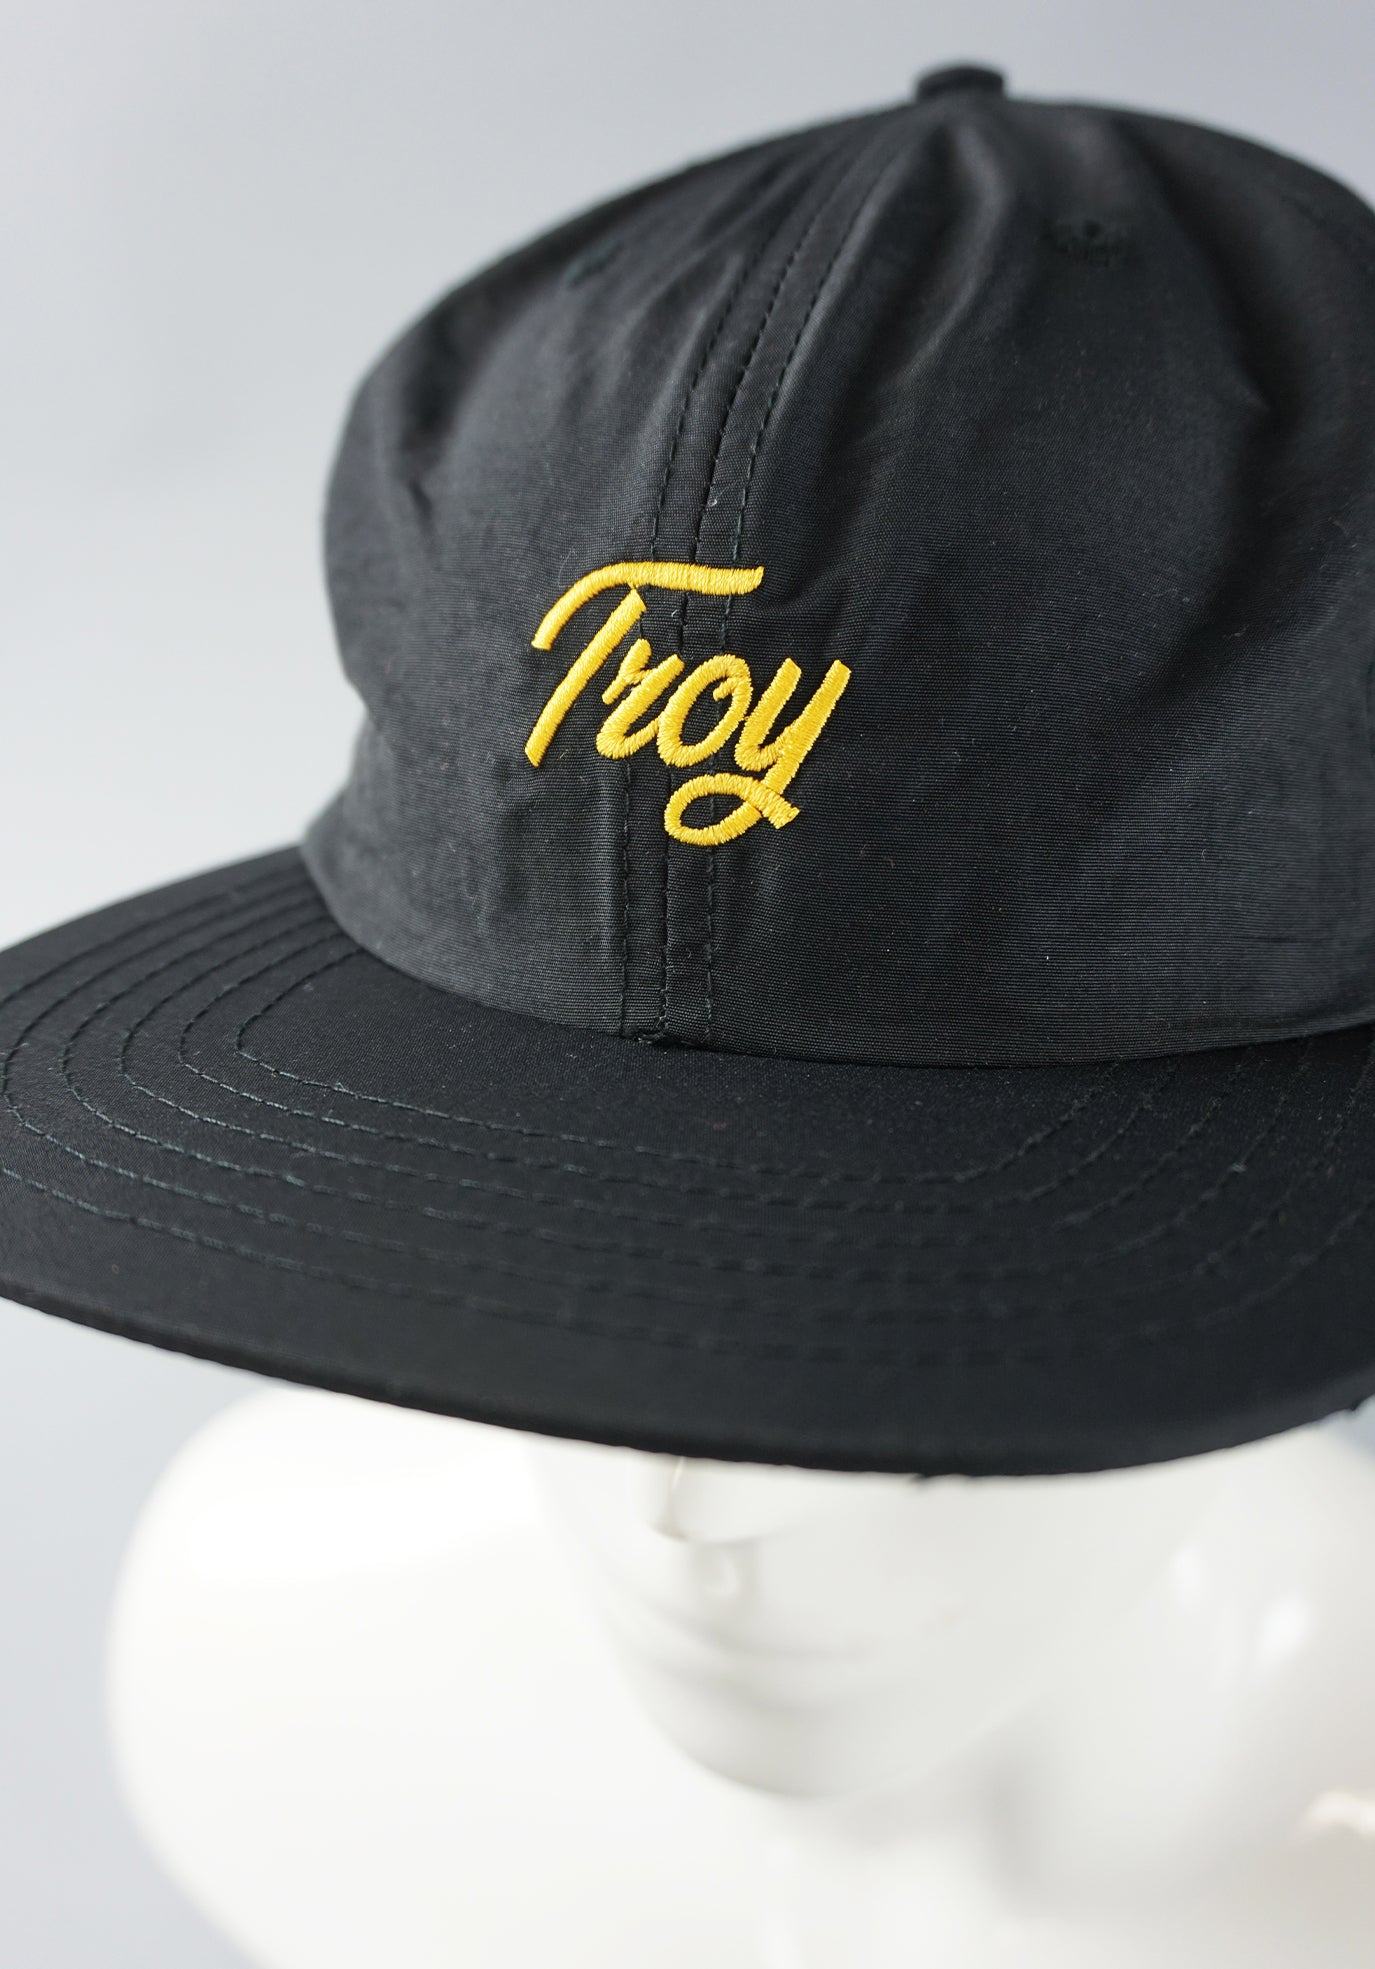 Close up of Troy script cap and gold embroidery.